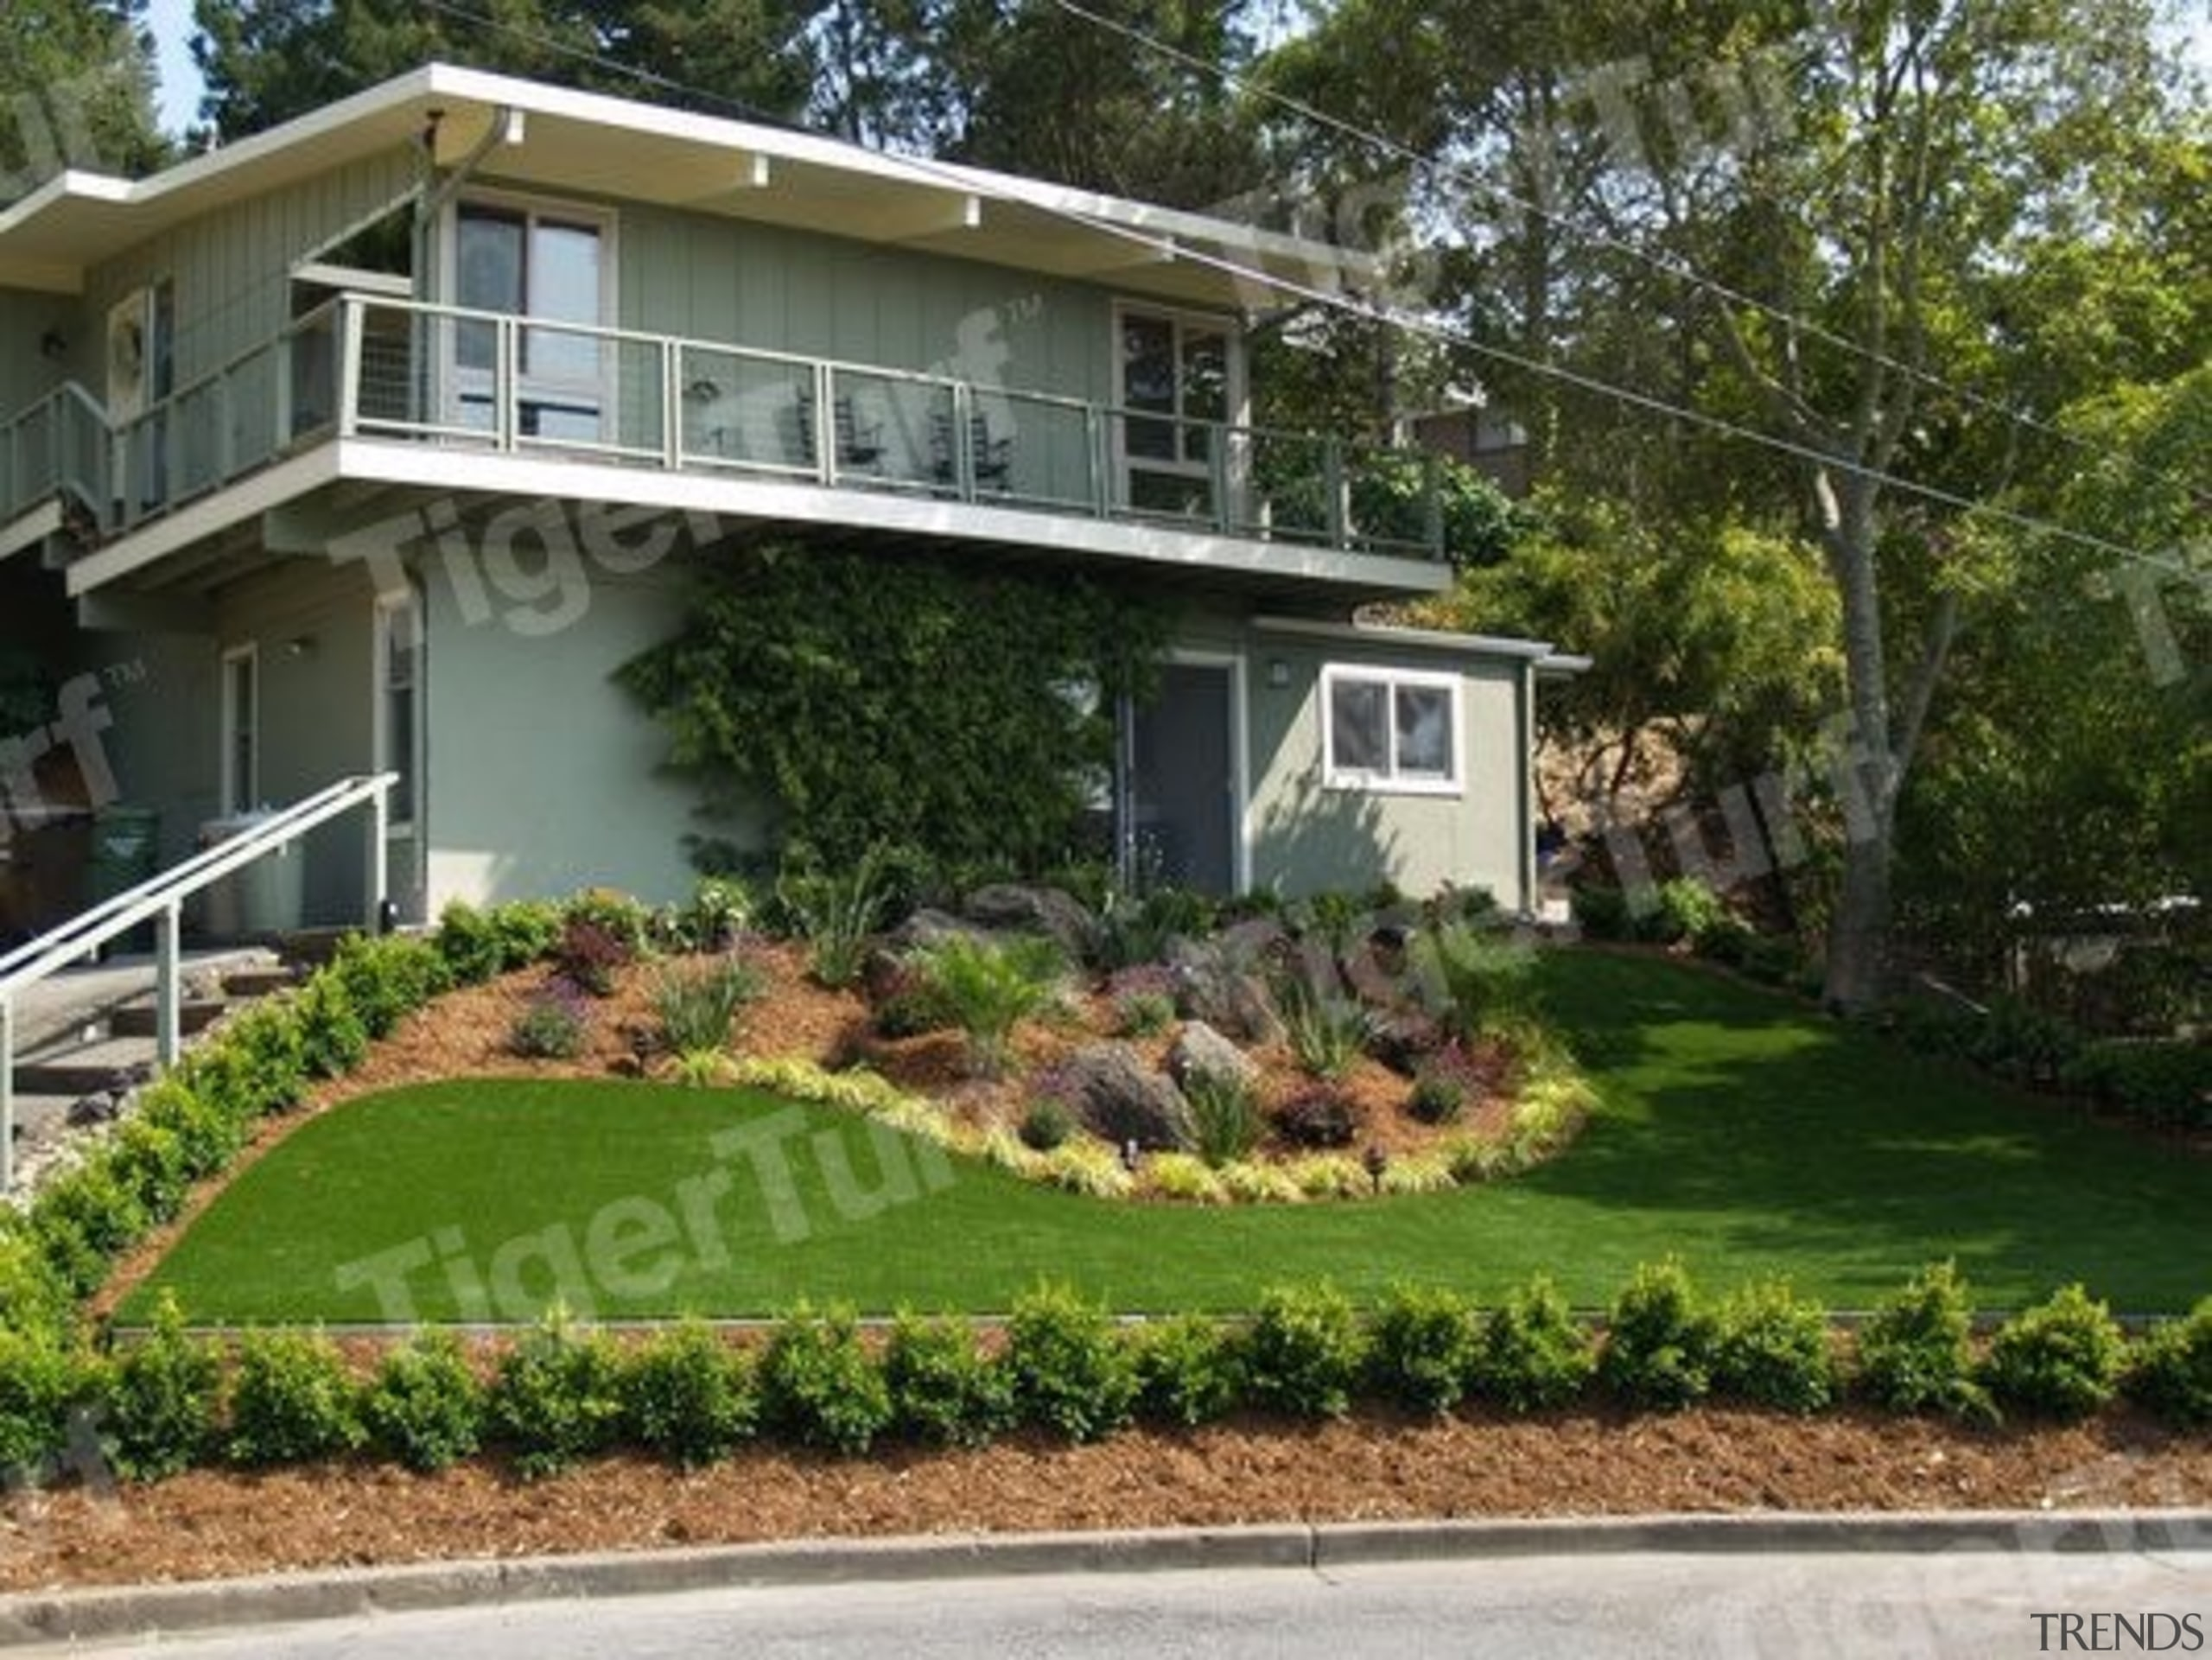 0Cb7A Wmfrontgarden - backyard | cottage | estate backyard, cottage, estate, facade, garden, grass, home, house, land lot, landscape, landscaping, lawn, mansion, neighbourhood, plant, property, real estate, residential area, yard, brown